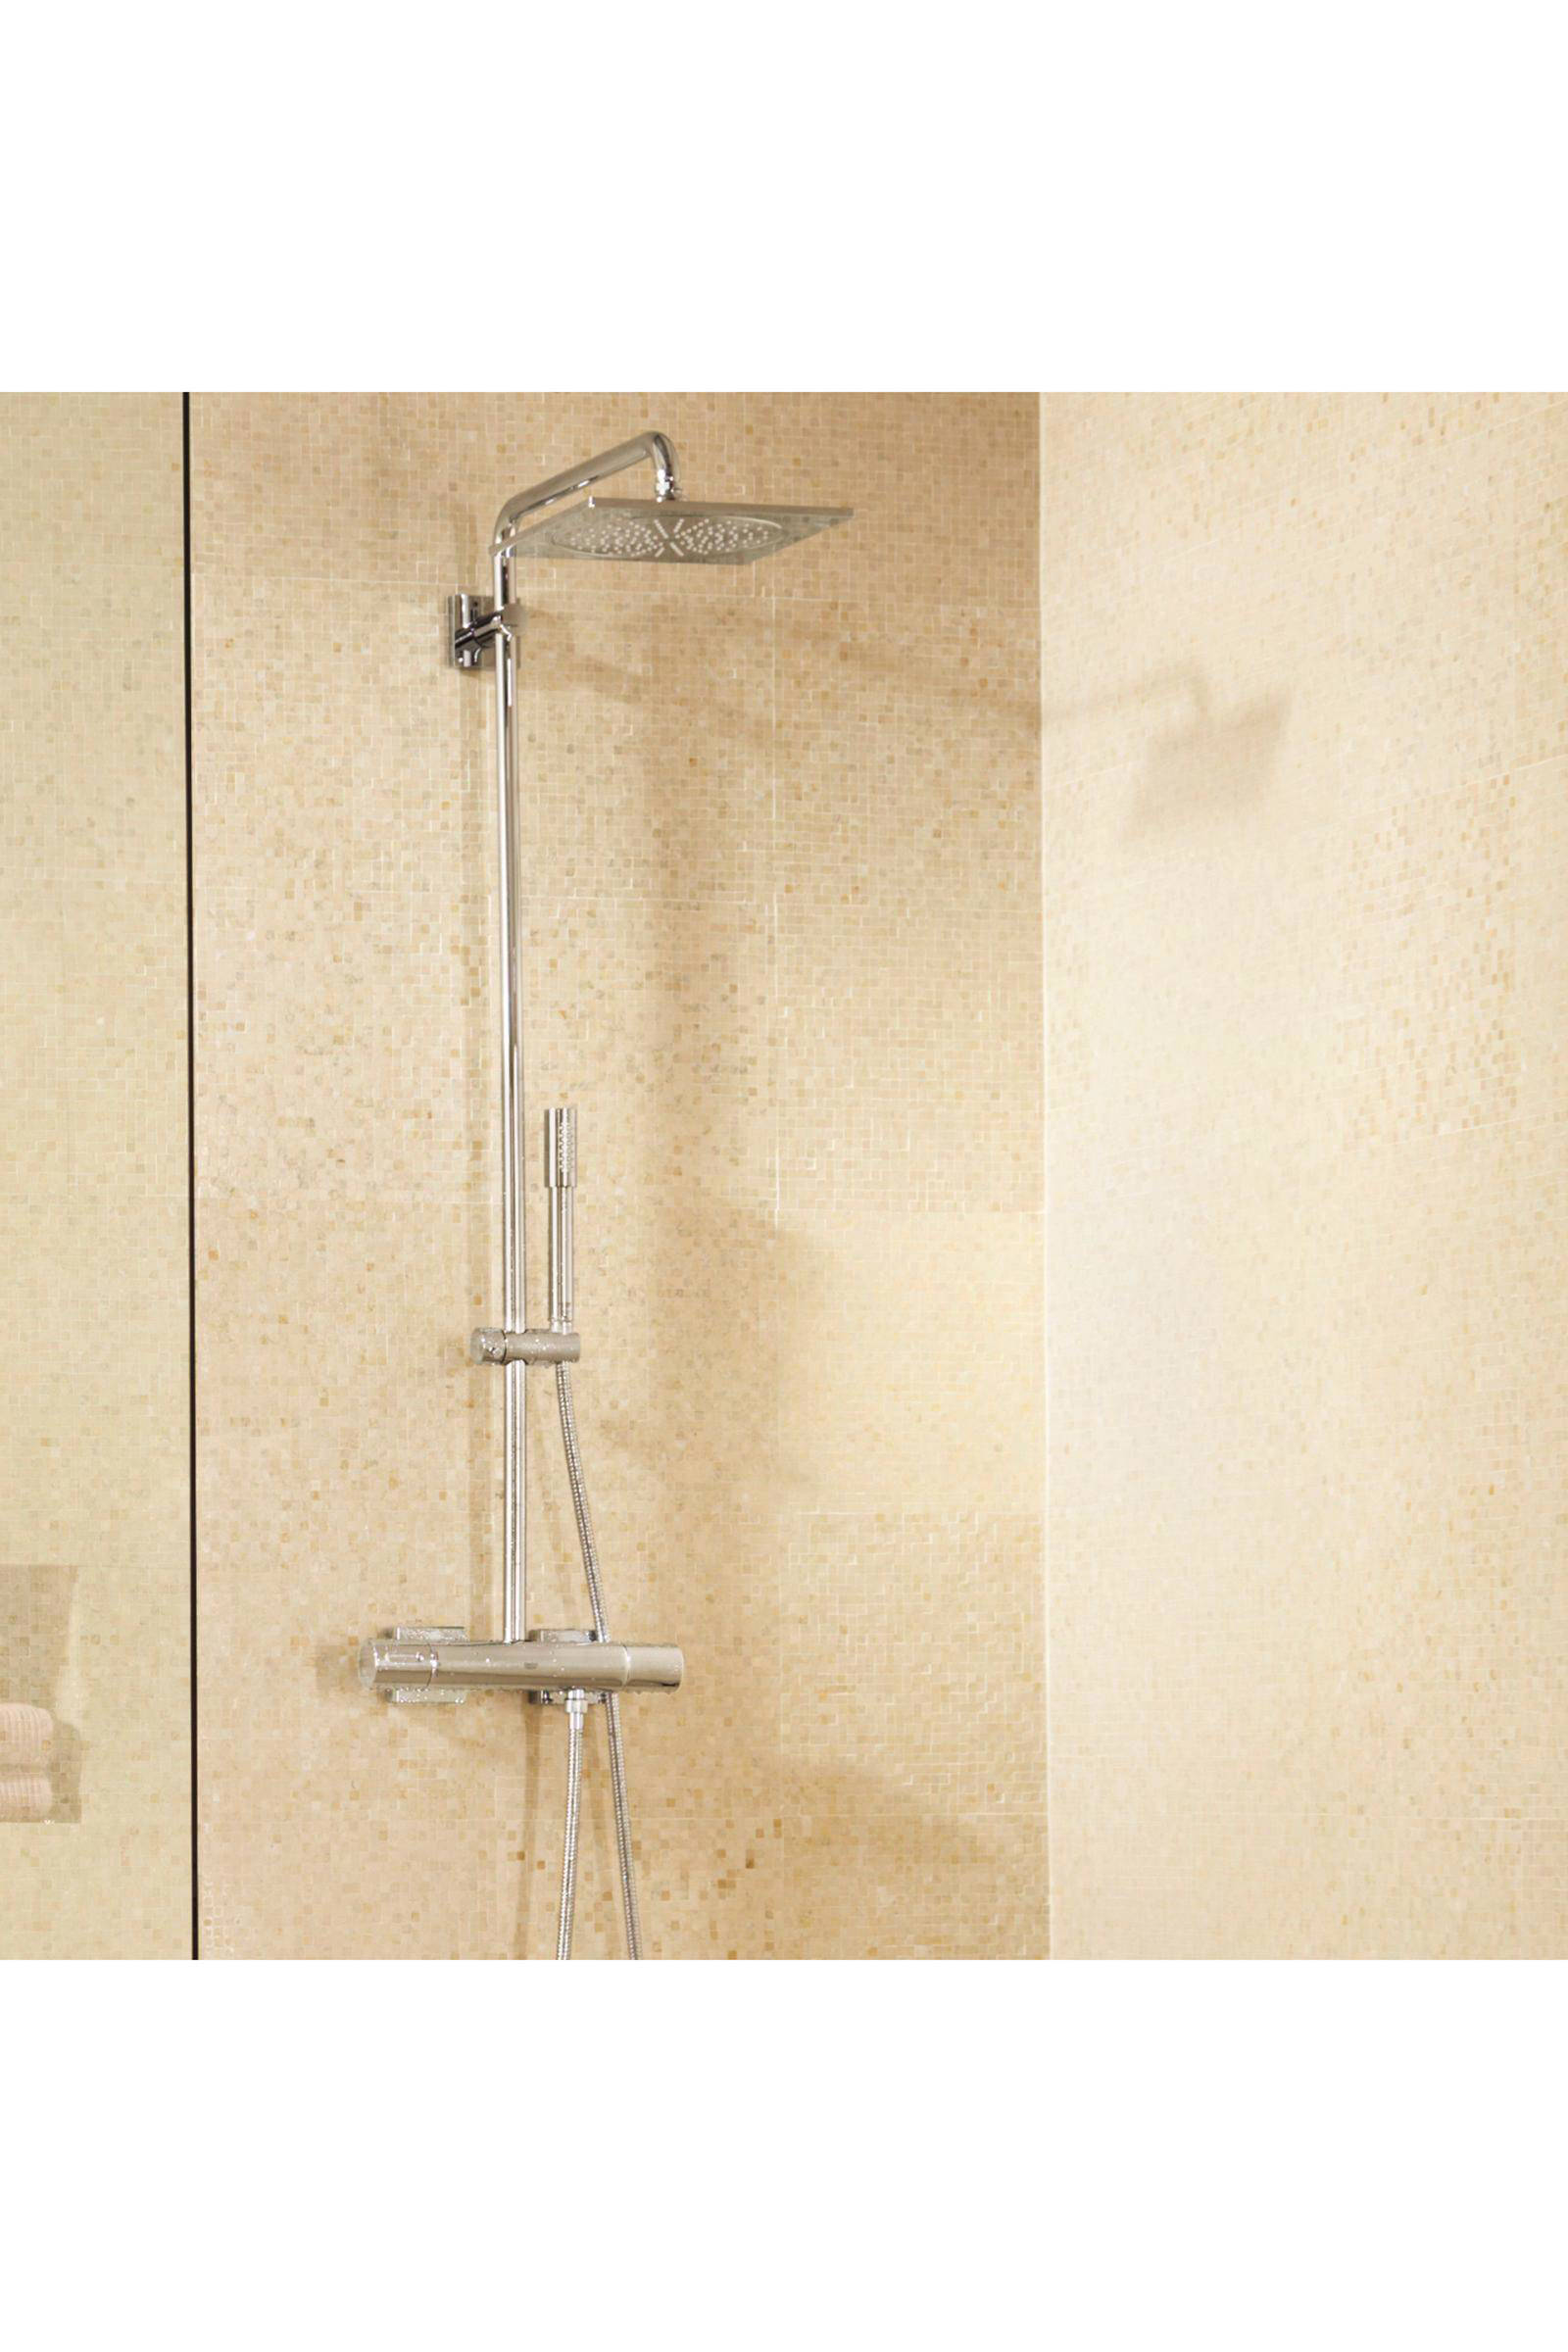 Aanbieding Regendouche Rainshower Regendouche